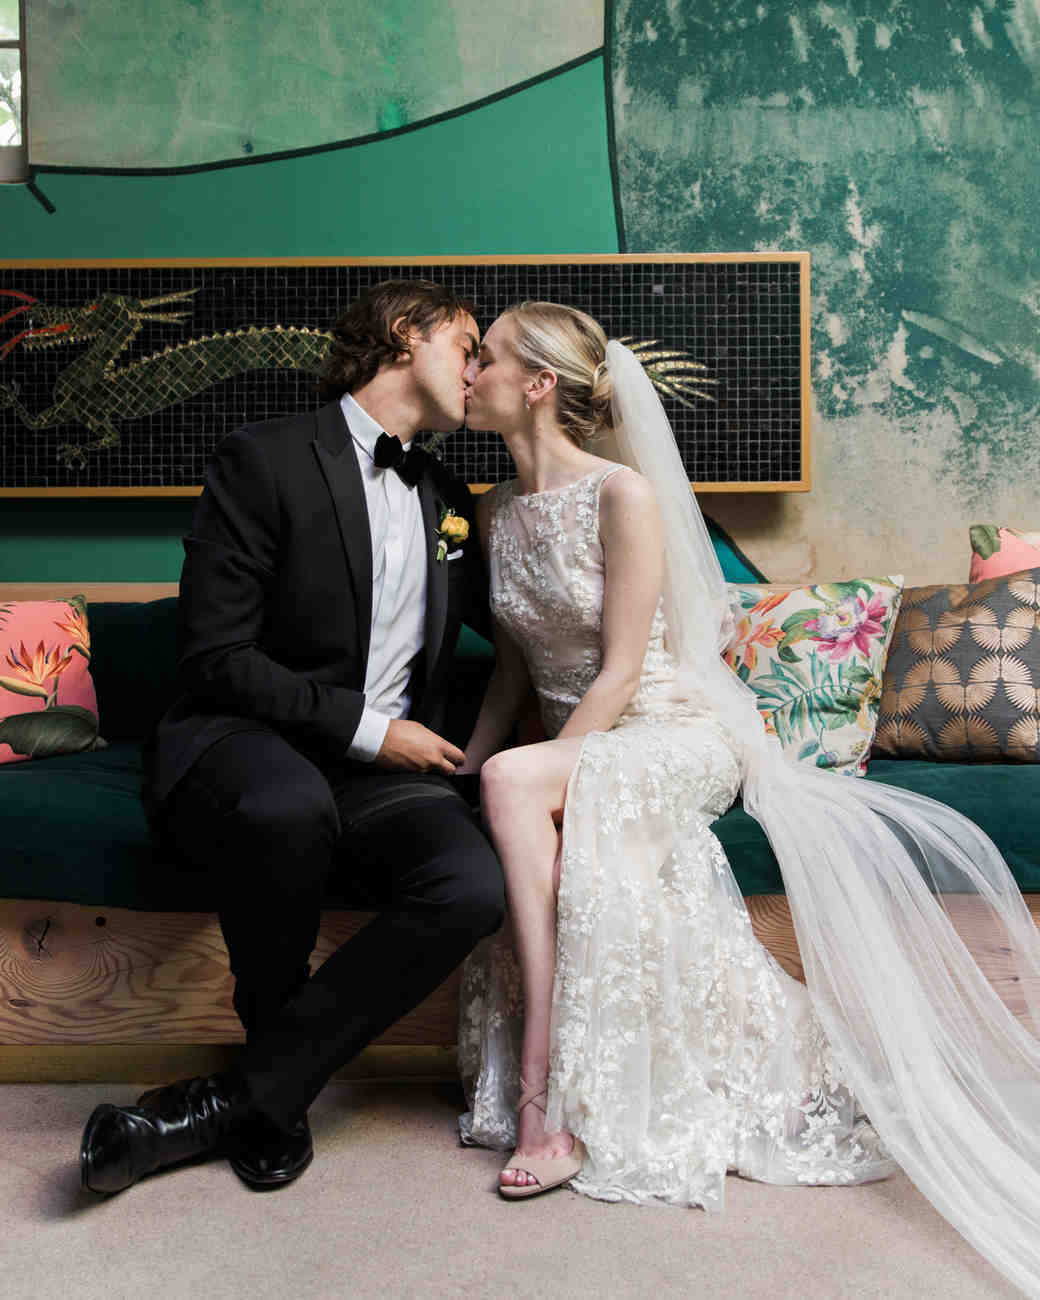 wedding couple kiss on couch with colored pillows